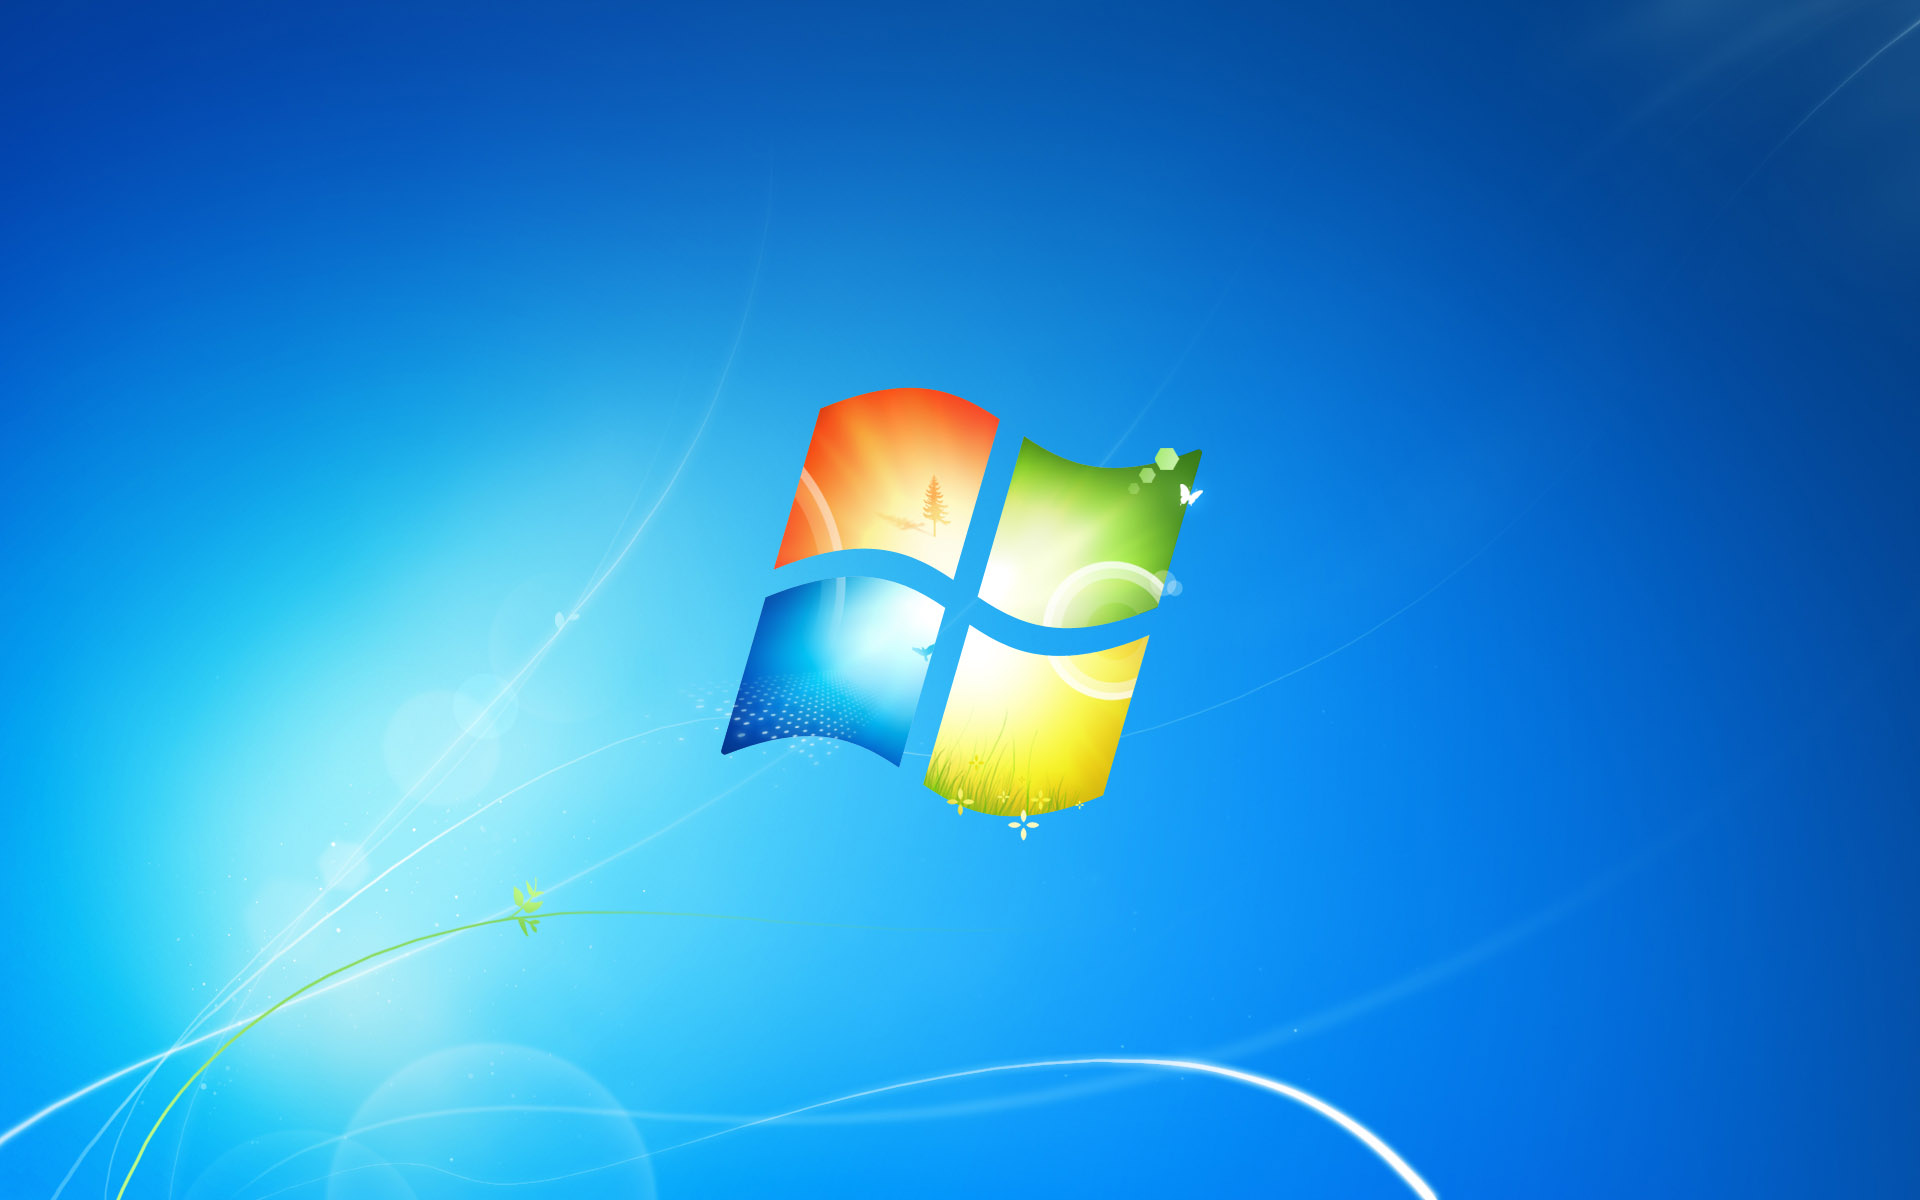 Windows Desktop Wallpaper 10751